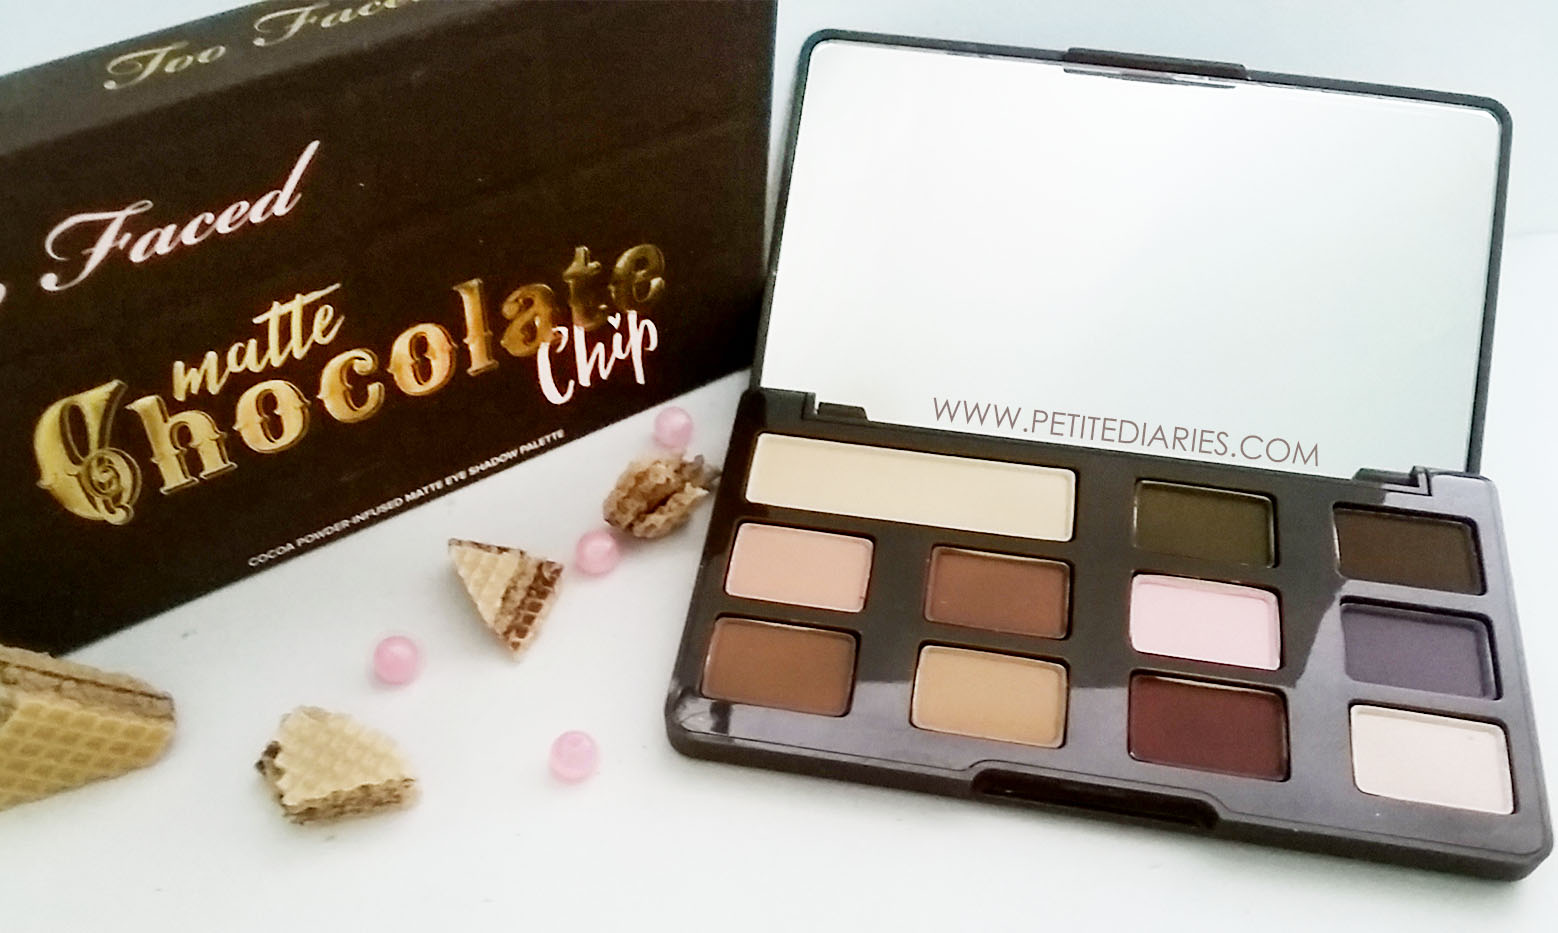 swatch toofaced matte chocolate chip eye shadow